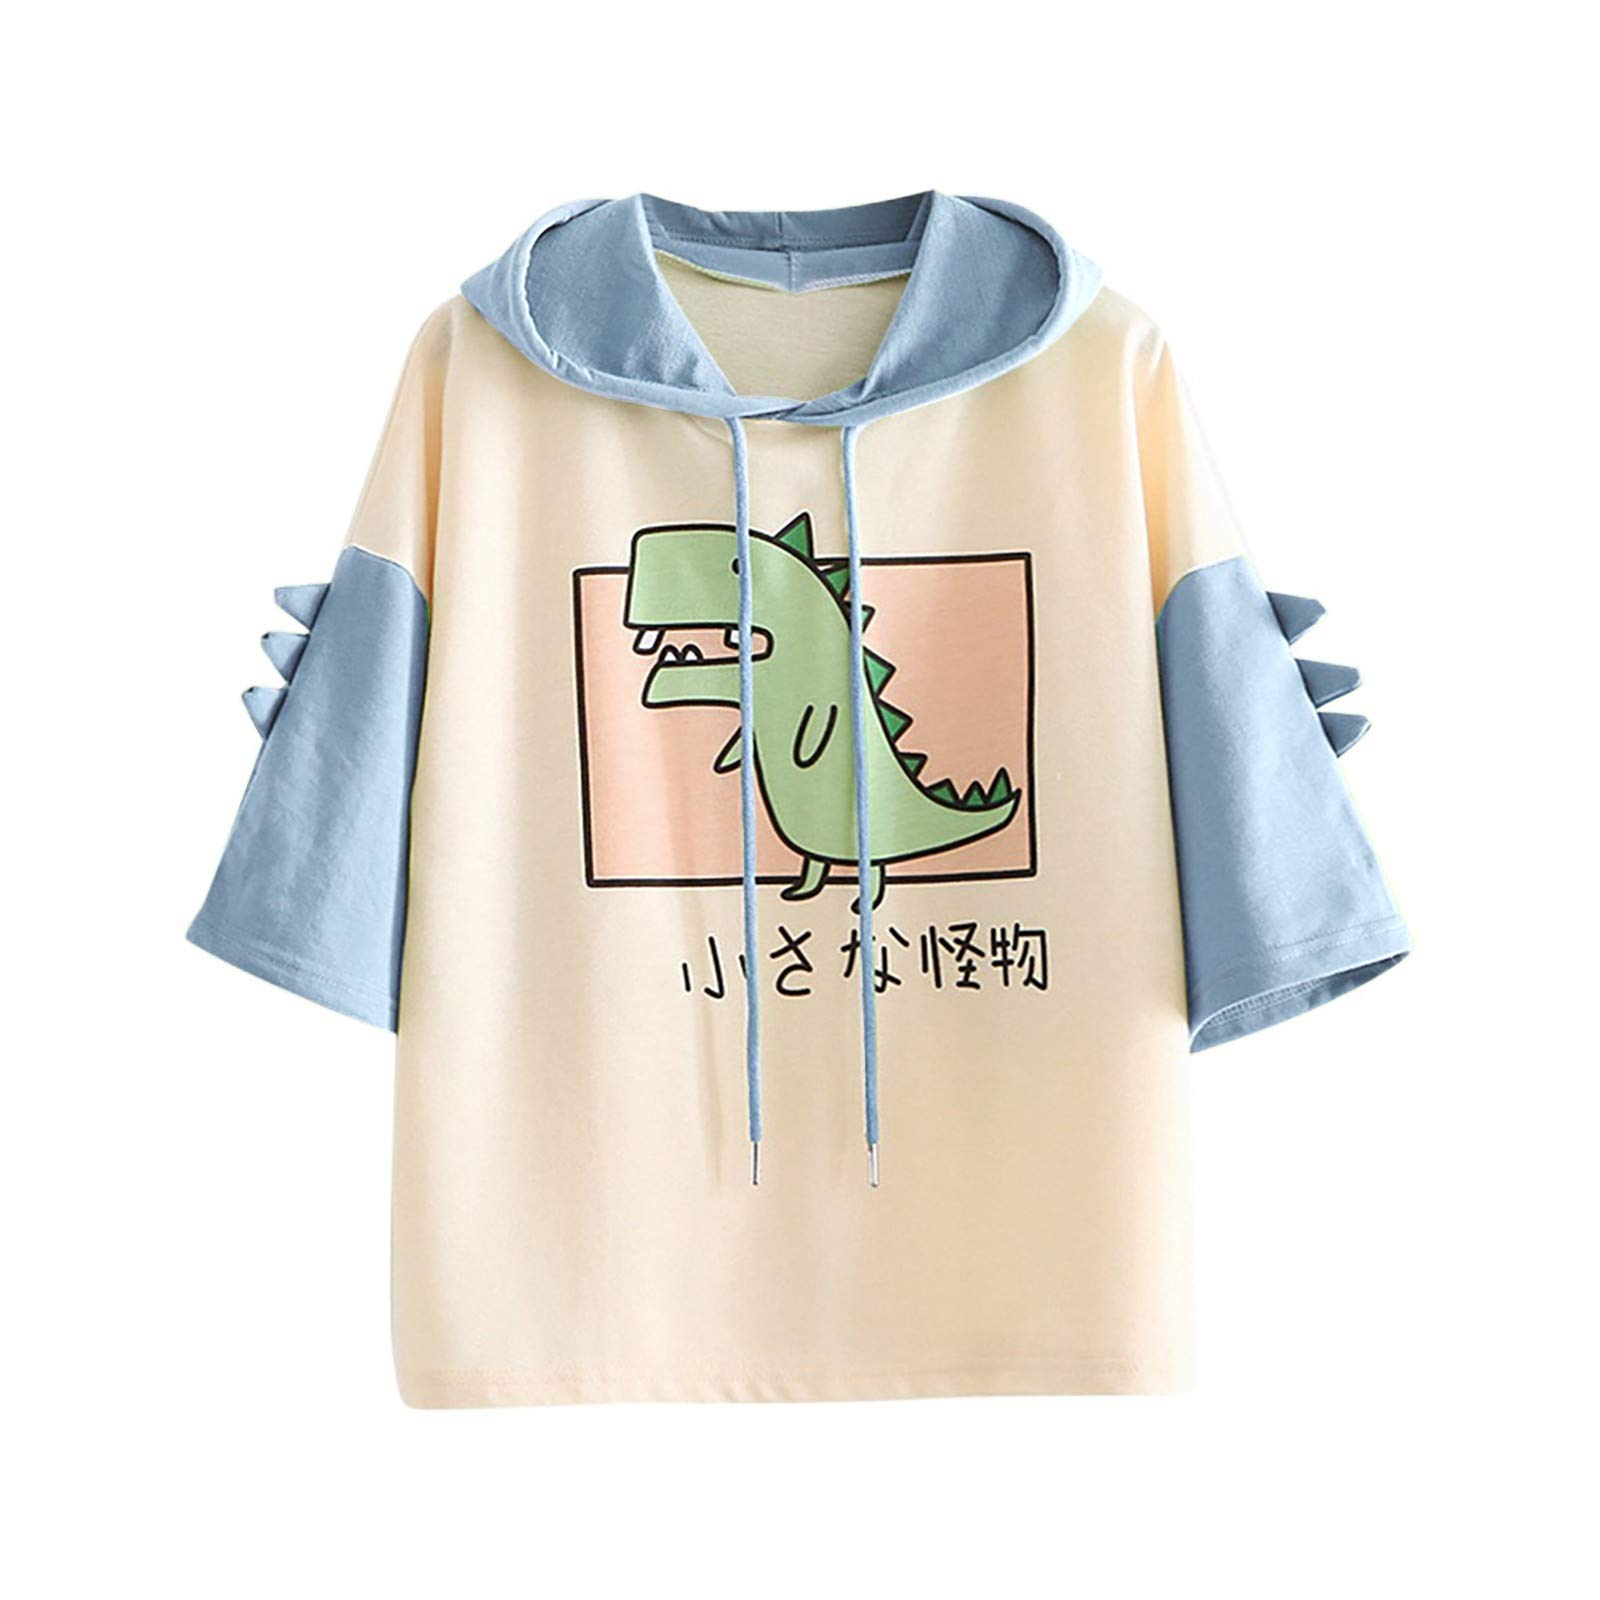 T Shirts for Teen Girls, Women's Cute Emo Dinosaur Shirt Loose Drawstring Hoodie Short Sleeve Tops Casual Graphic Tees